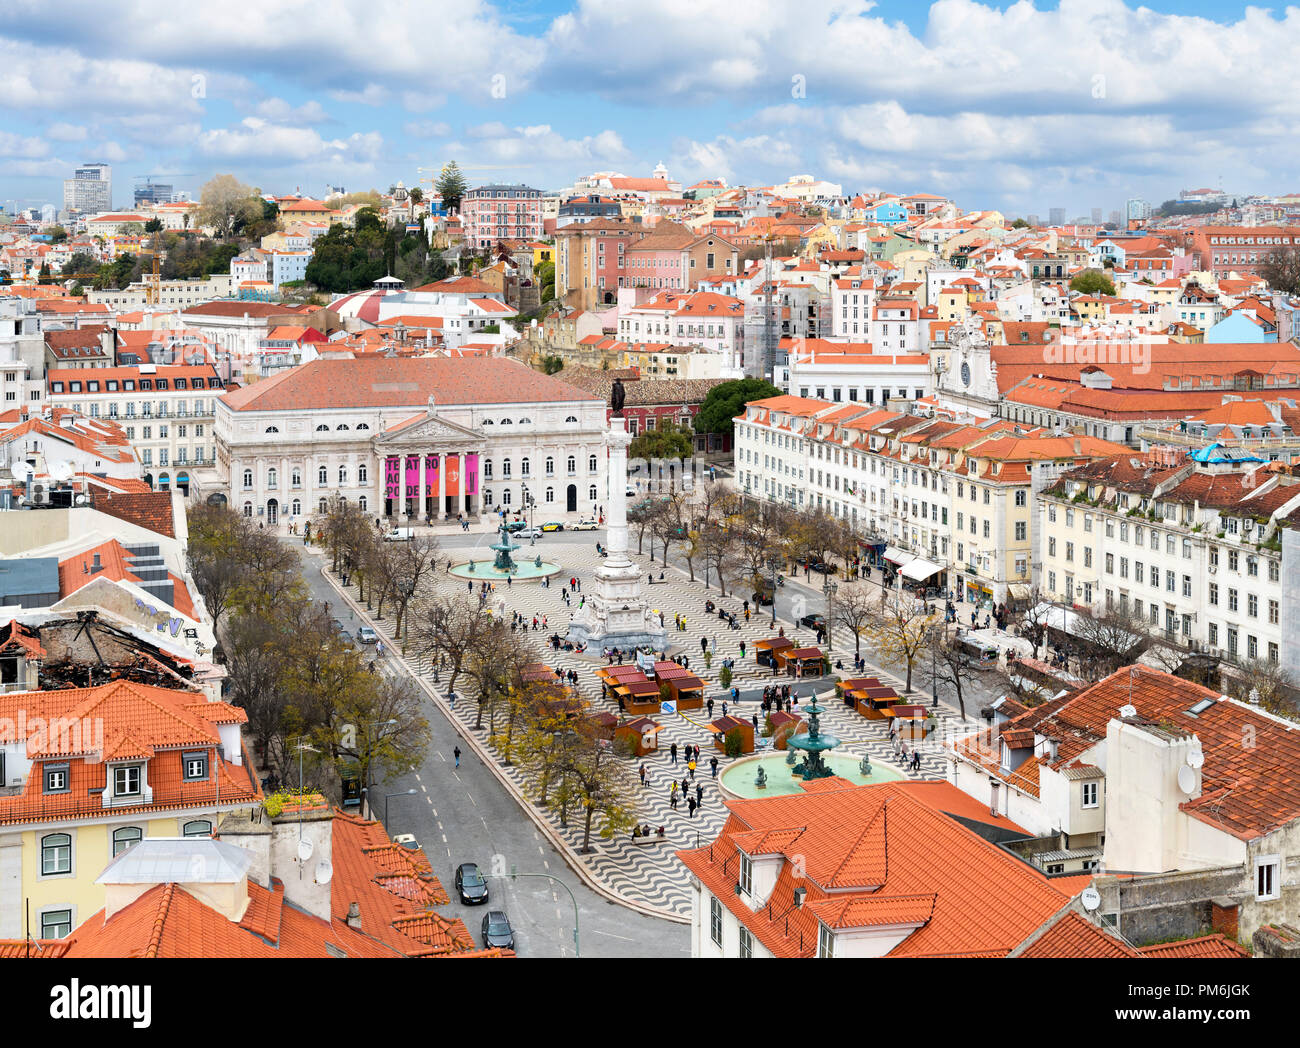 View over Praca Dom Pedro IV ( Rossio ) from the Santa Justa lift, Baixa district, Lisbon, Portugal - Stock Image